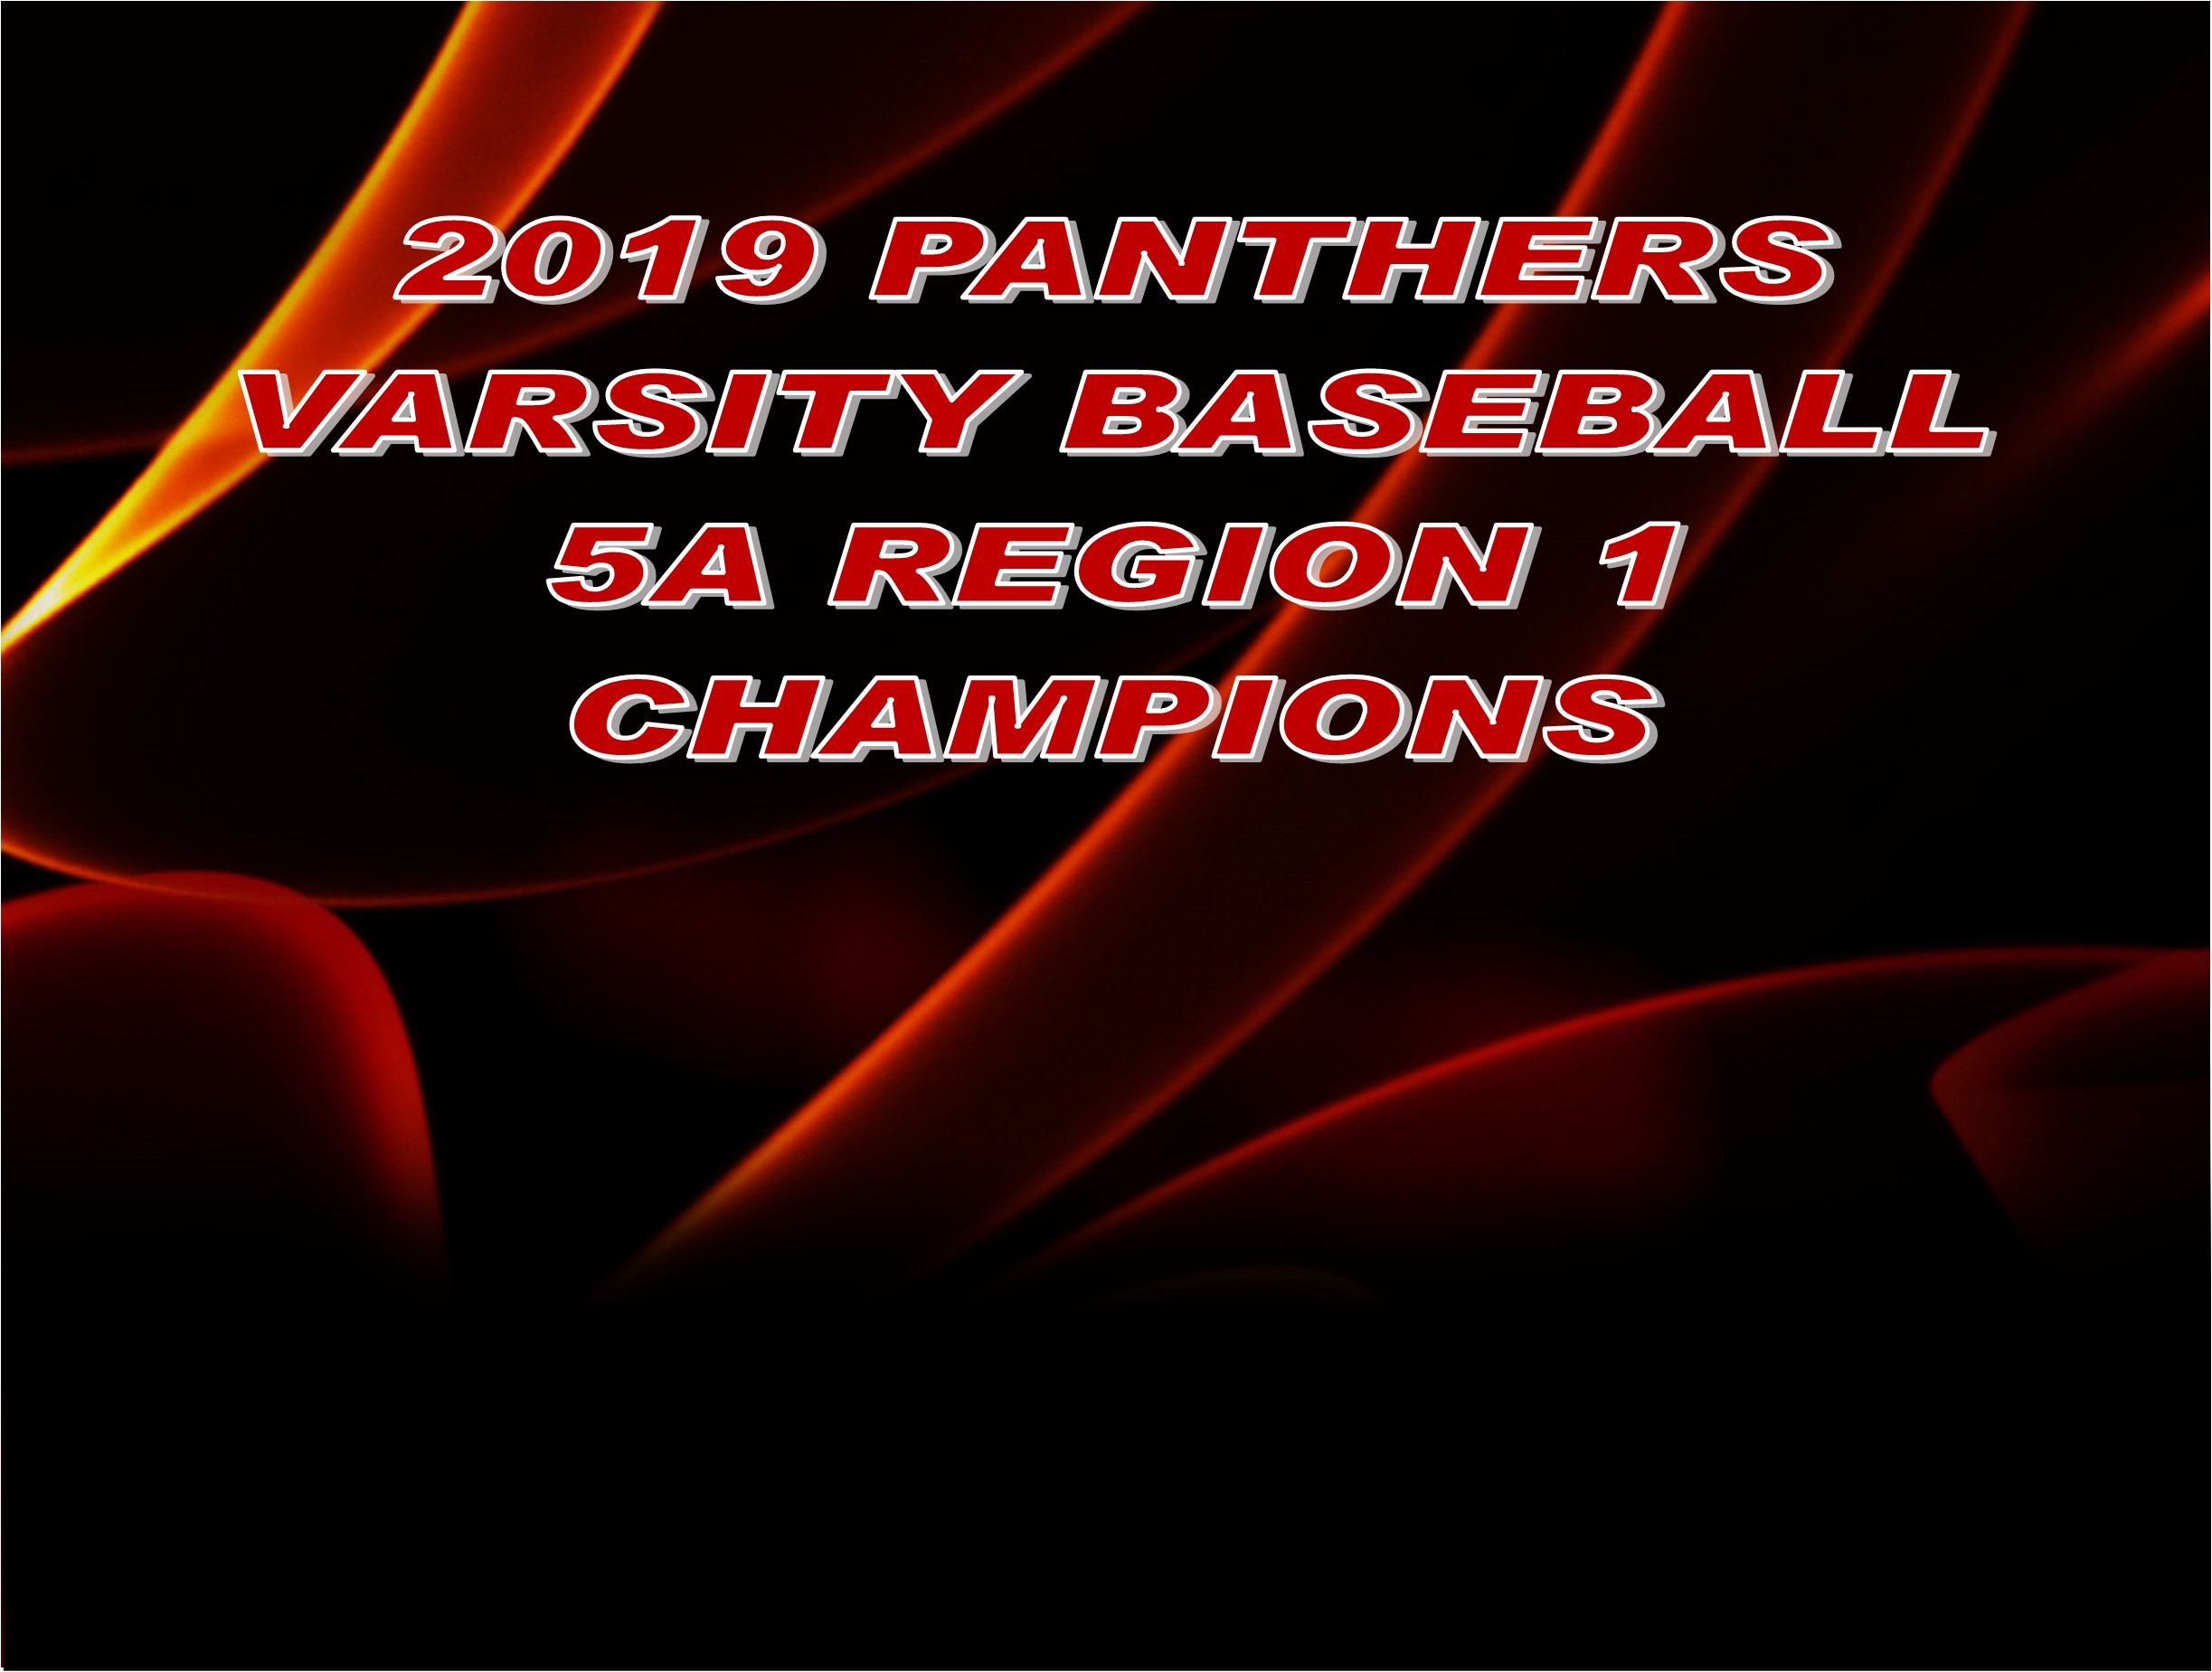 Baseball: Colleyville Panthers Defeat the Lubbock Monterey Plainsmen to Win 5A Region 1 Championship